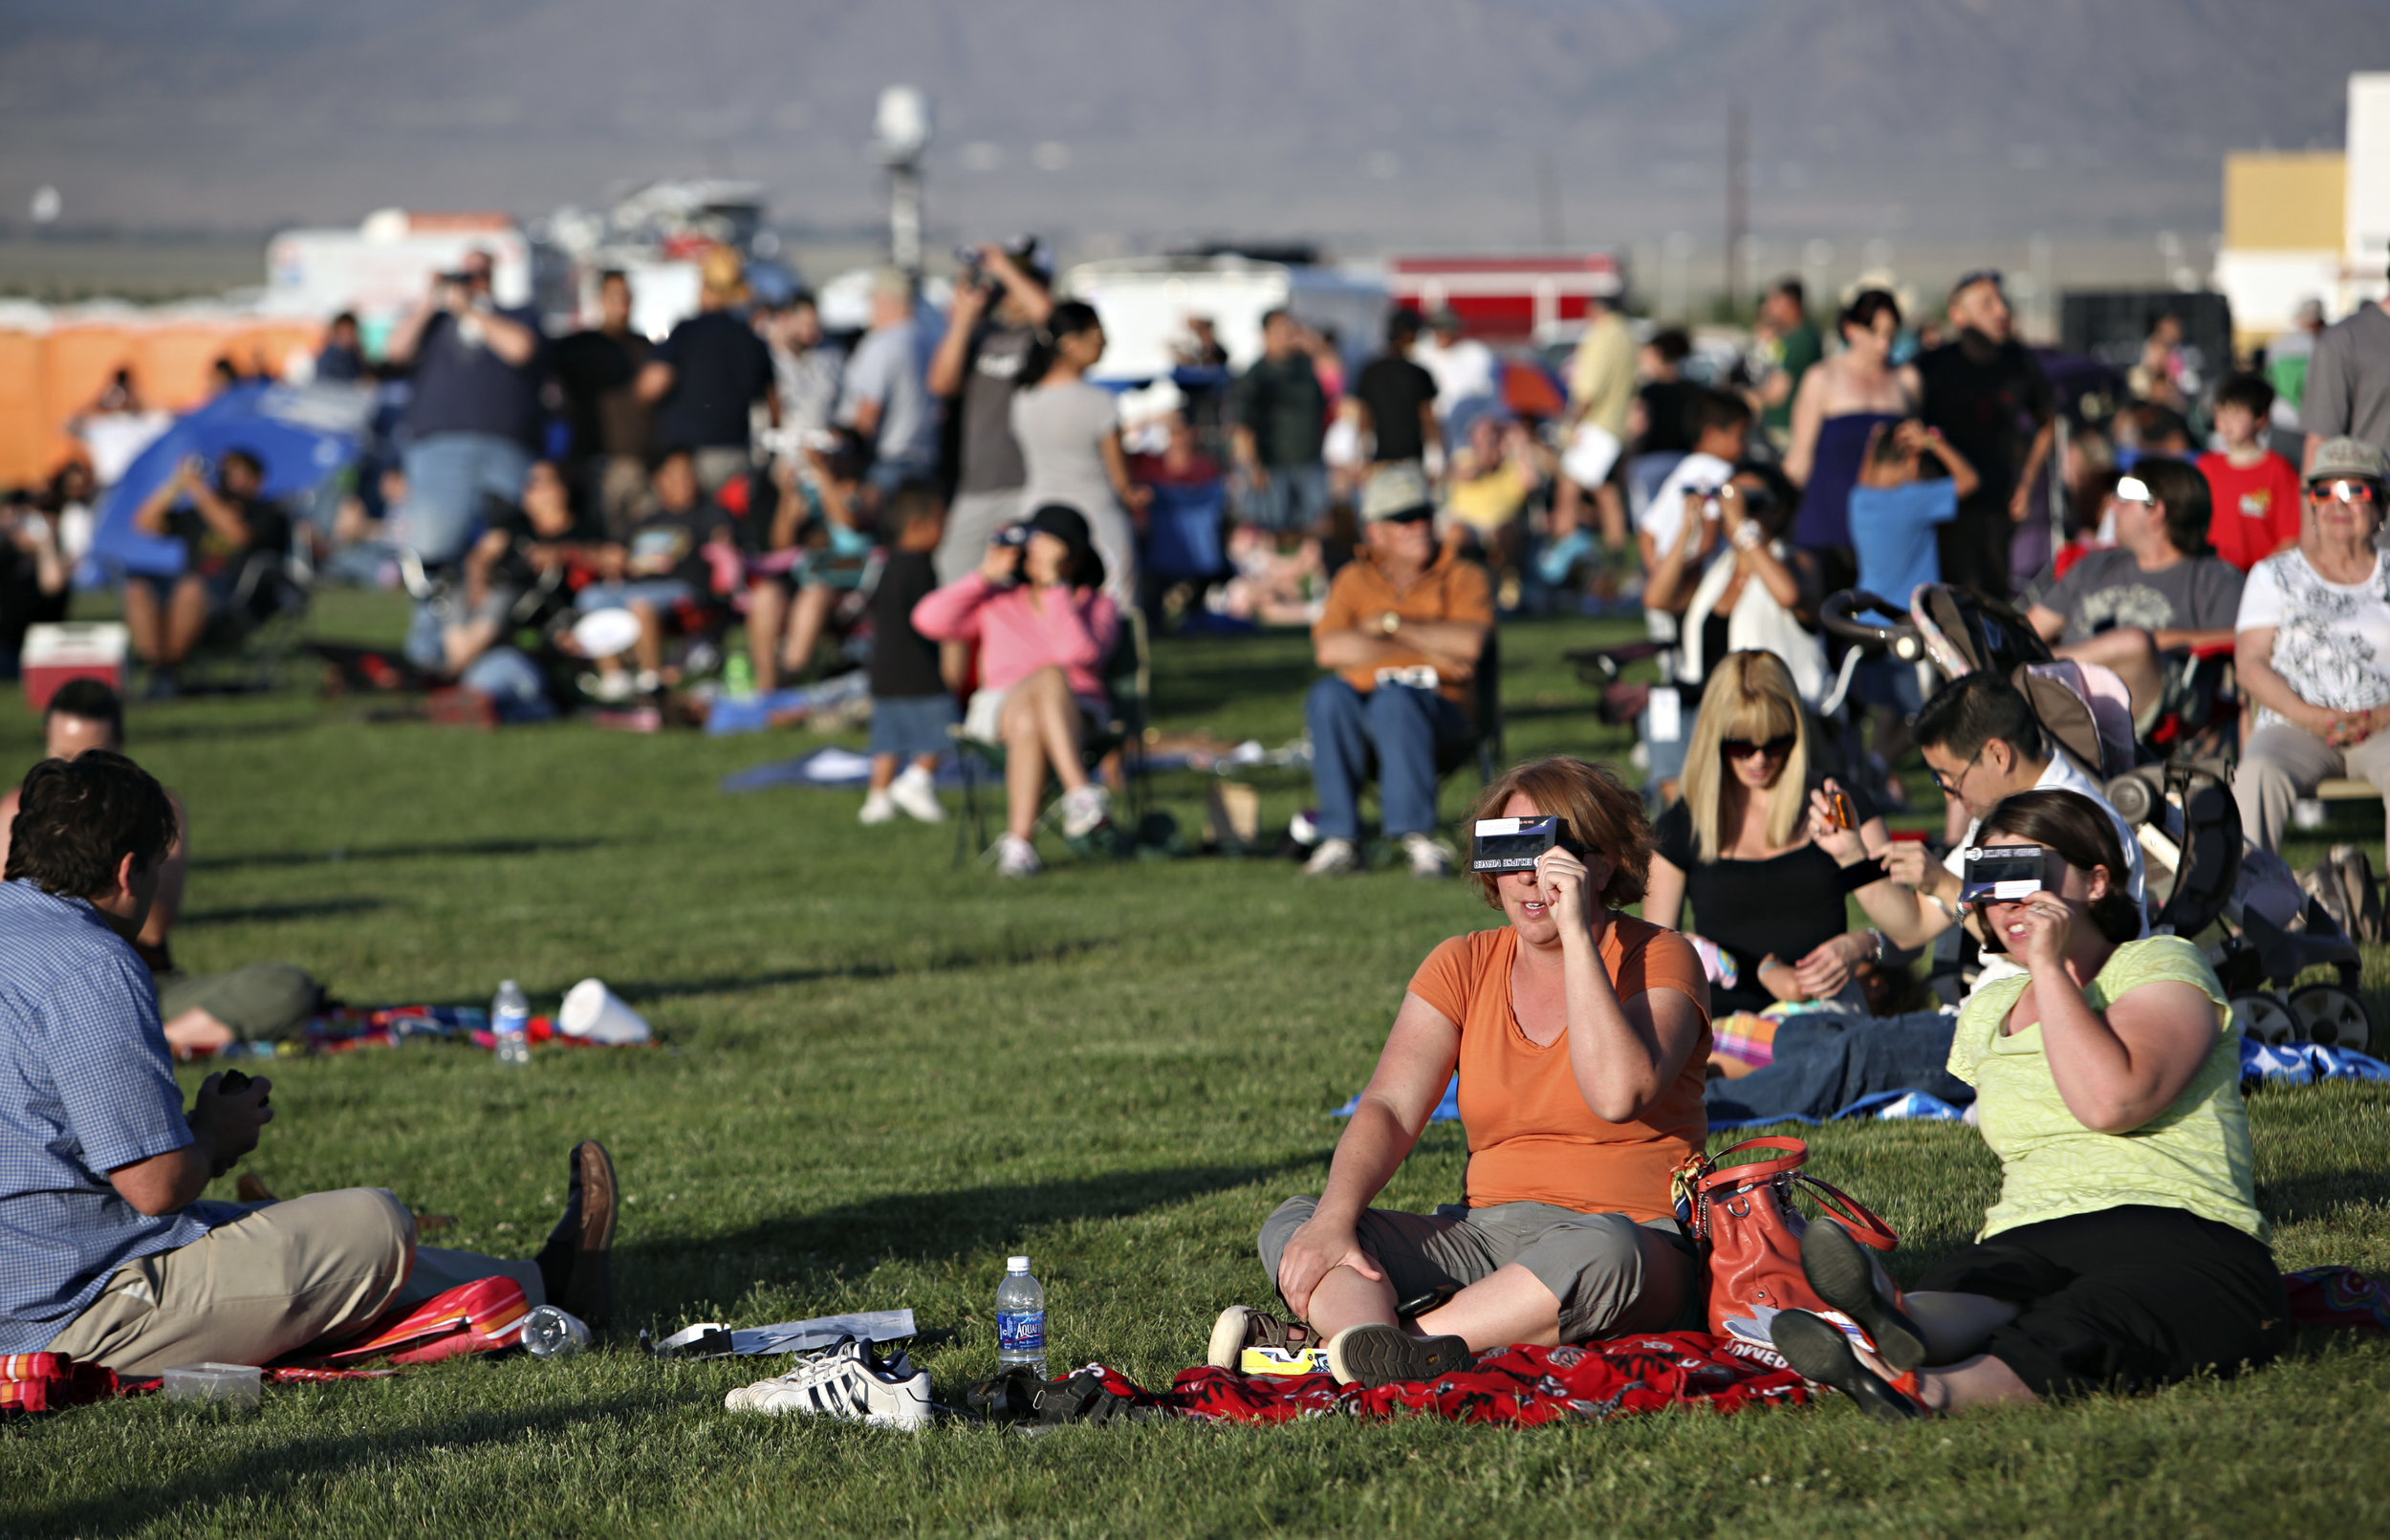 From right, Deanna Creighton and Crystal Humble, both from Albuquerque, watch the annular solar eclipse during the eclipse viewing party near the Hard Rock Casino Presents the Pavilion, Sunday, May 20, 2012, in Albuquerque, NM. (Morgan Petroski/Albuquerque Journal)